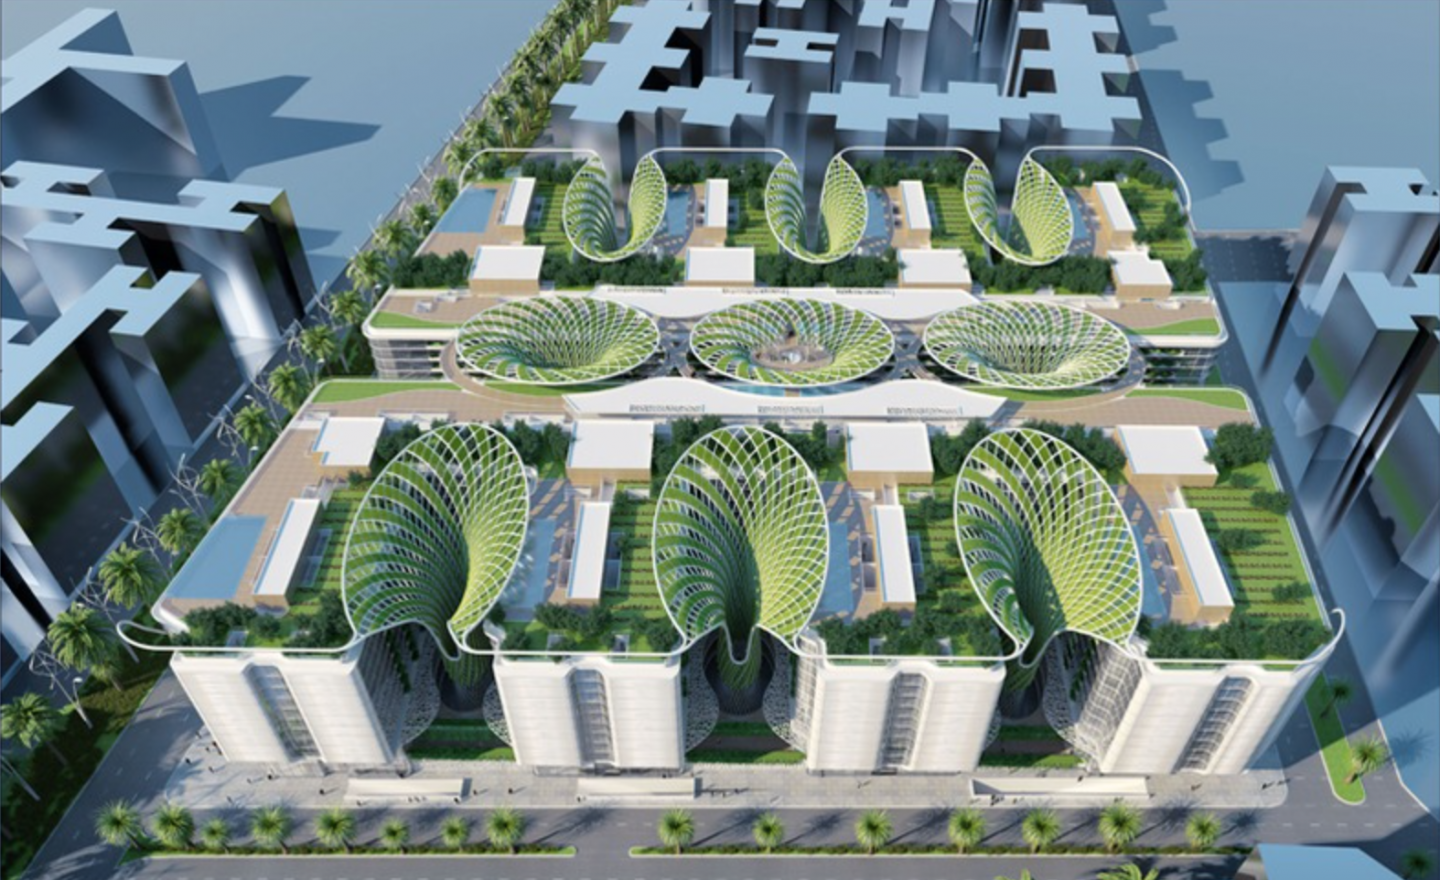 Overhead view of the interconnected complex and its mega trees.